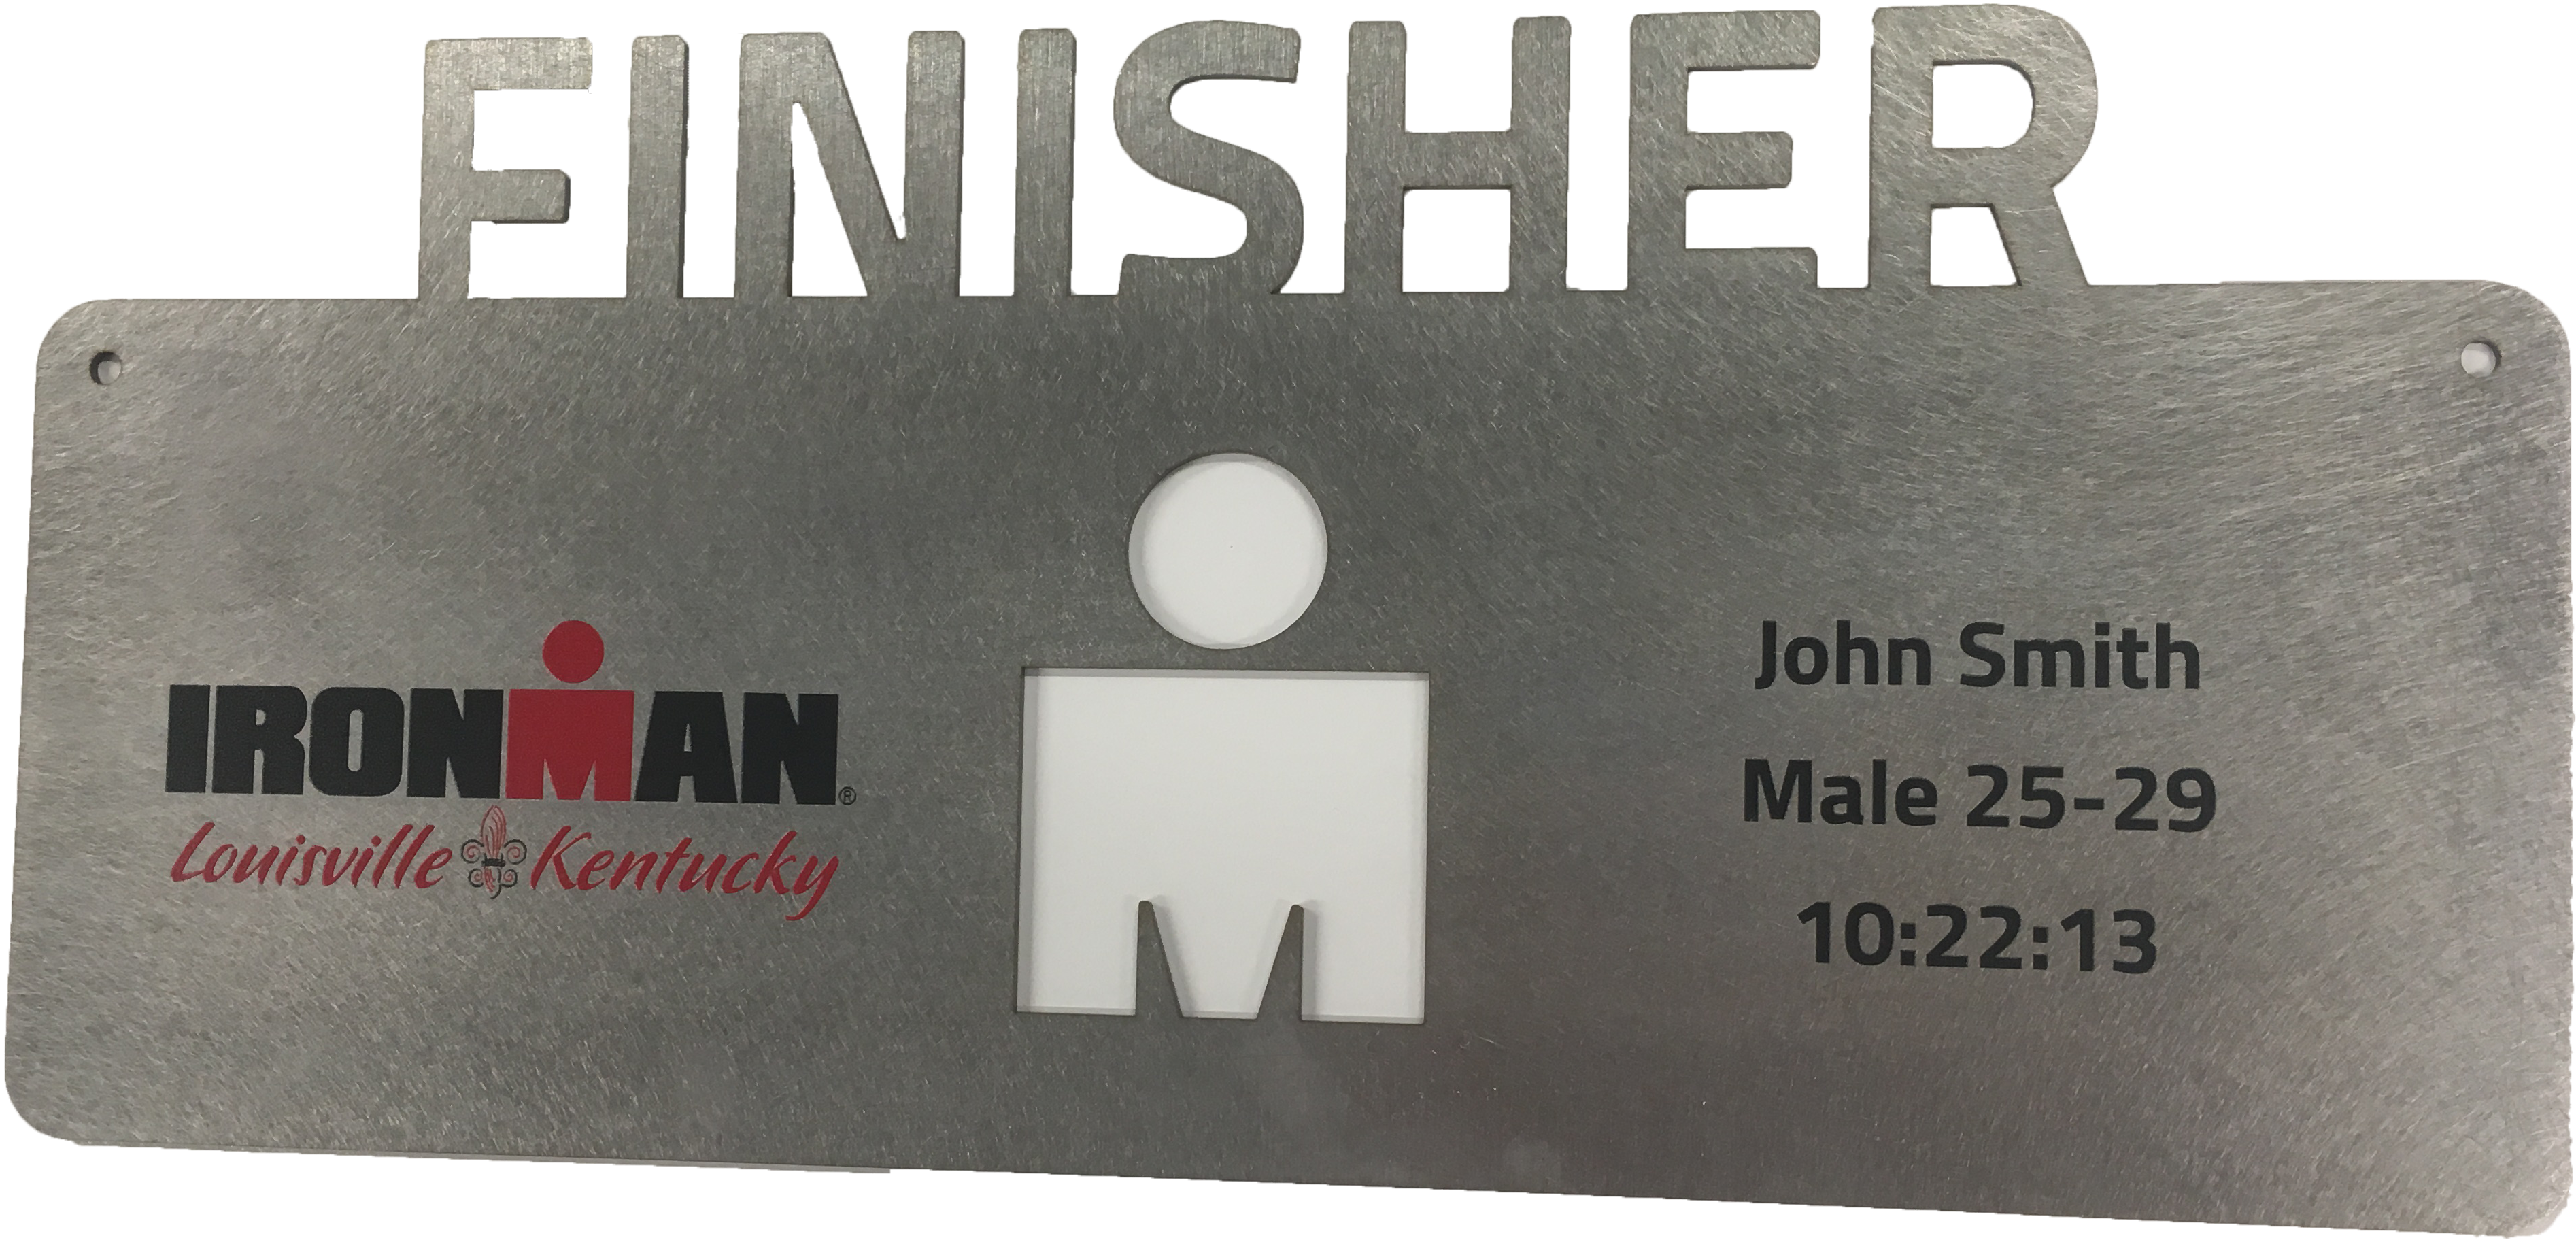 IRONMAN Personalized Finisher Plaque